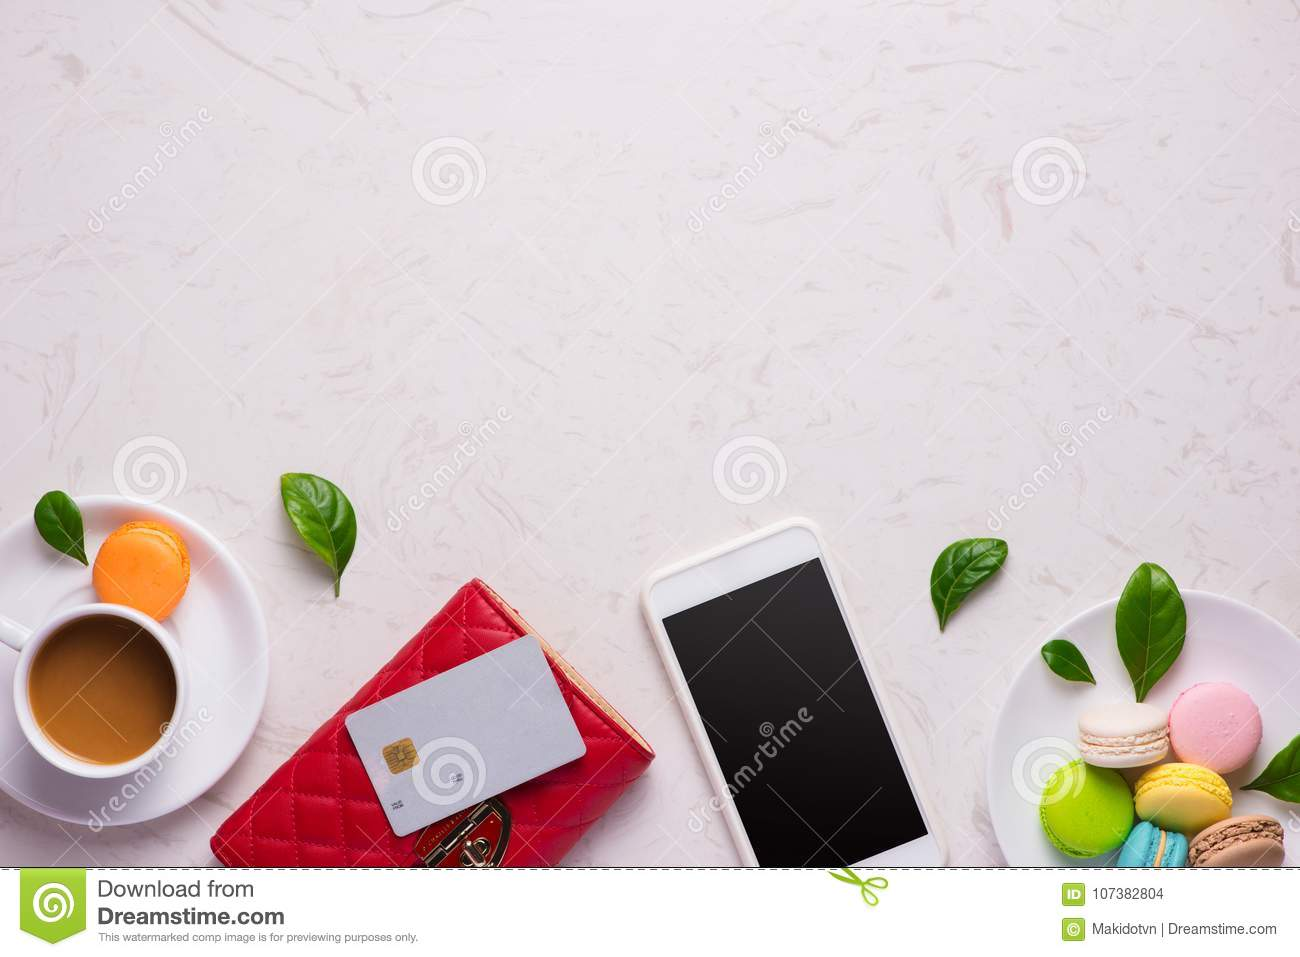 Workplace with stylish red leather wallet and smartphone